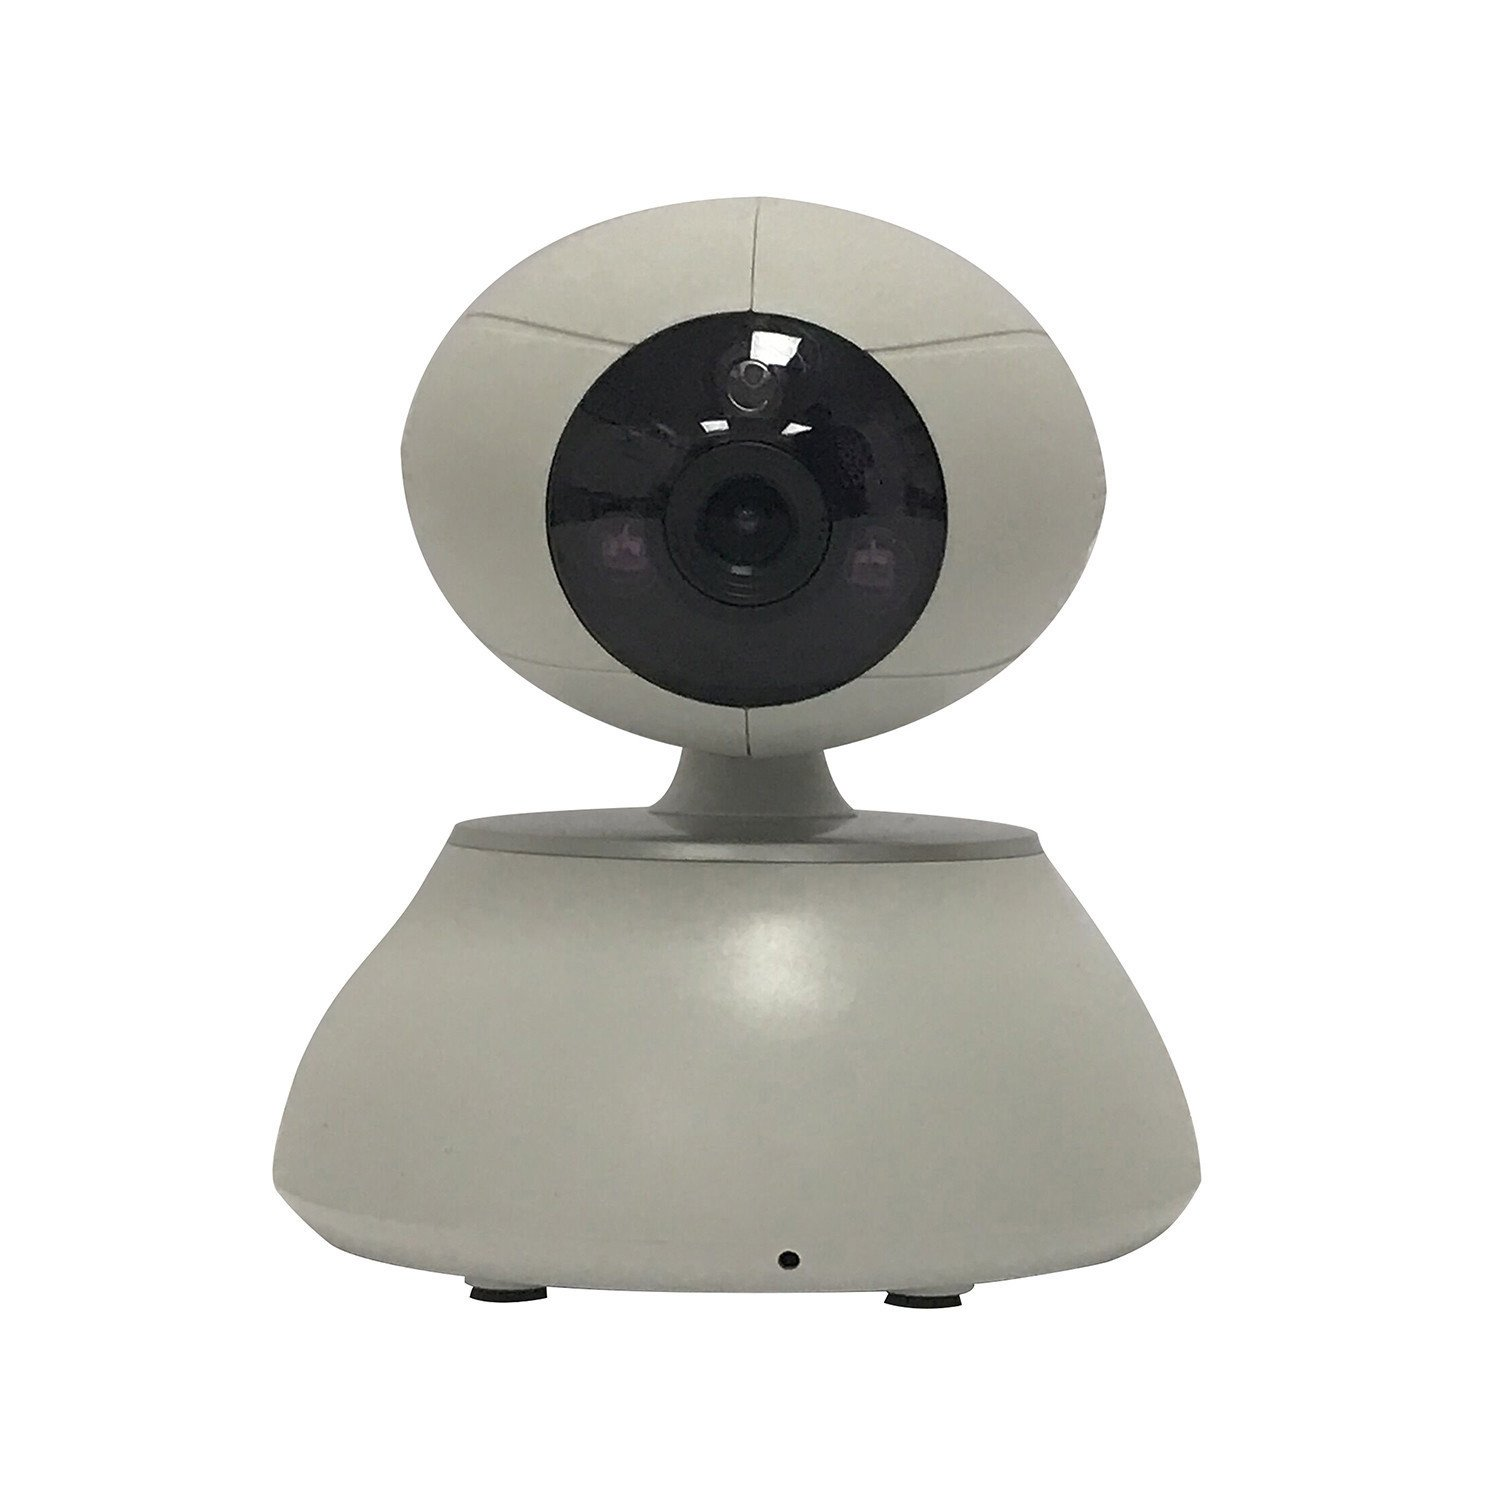 Sicherheitskamera Indoor IP Wlan, IP Cam Baby Babyphone: Amazon.de ...